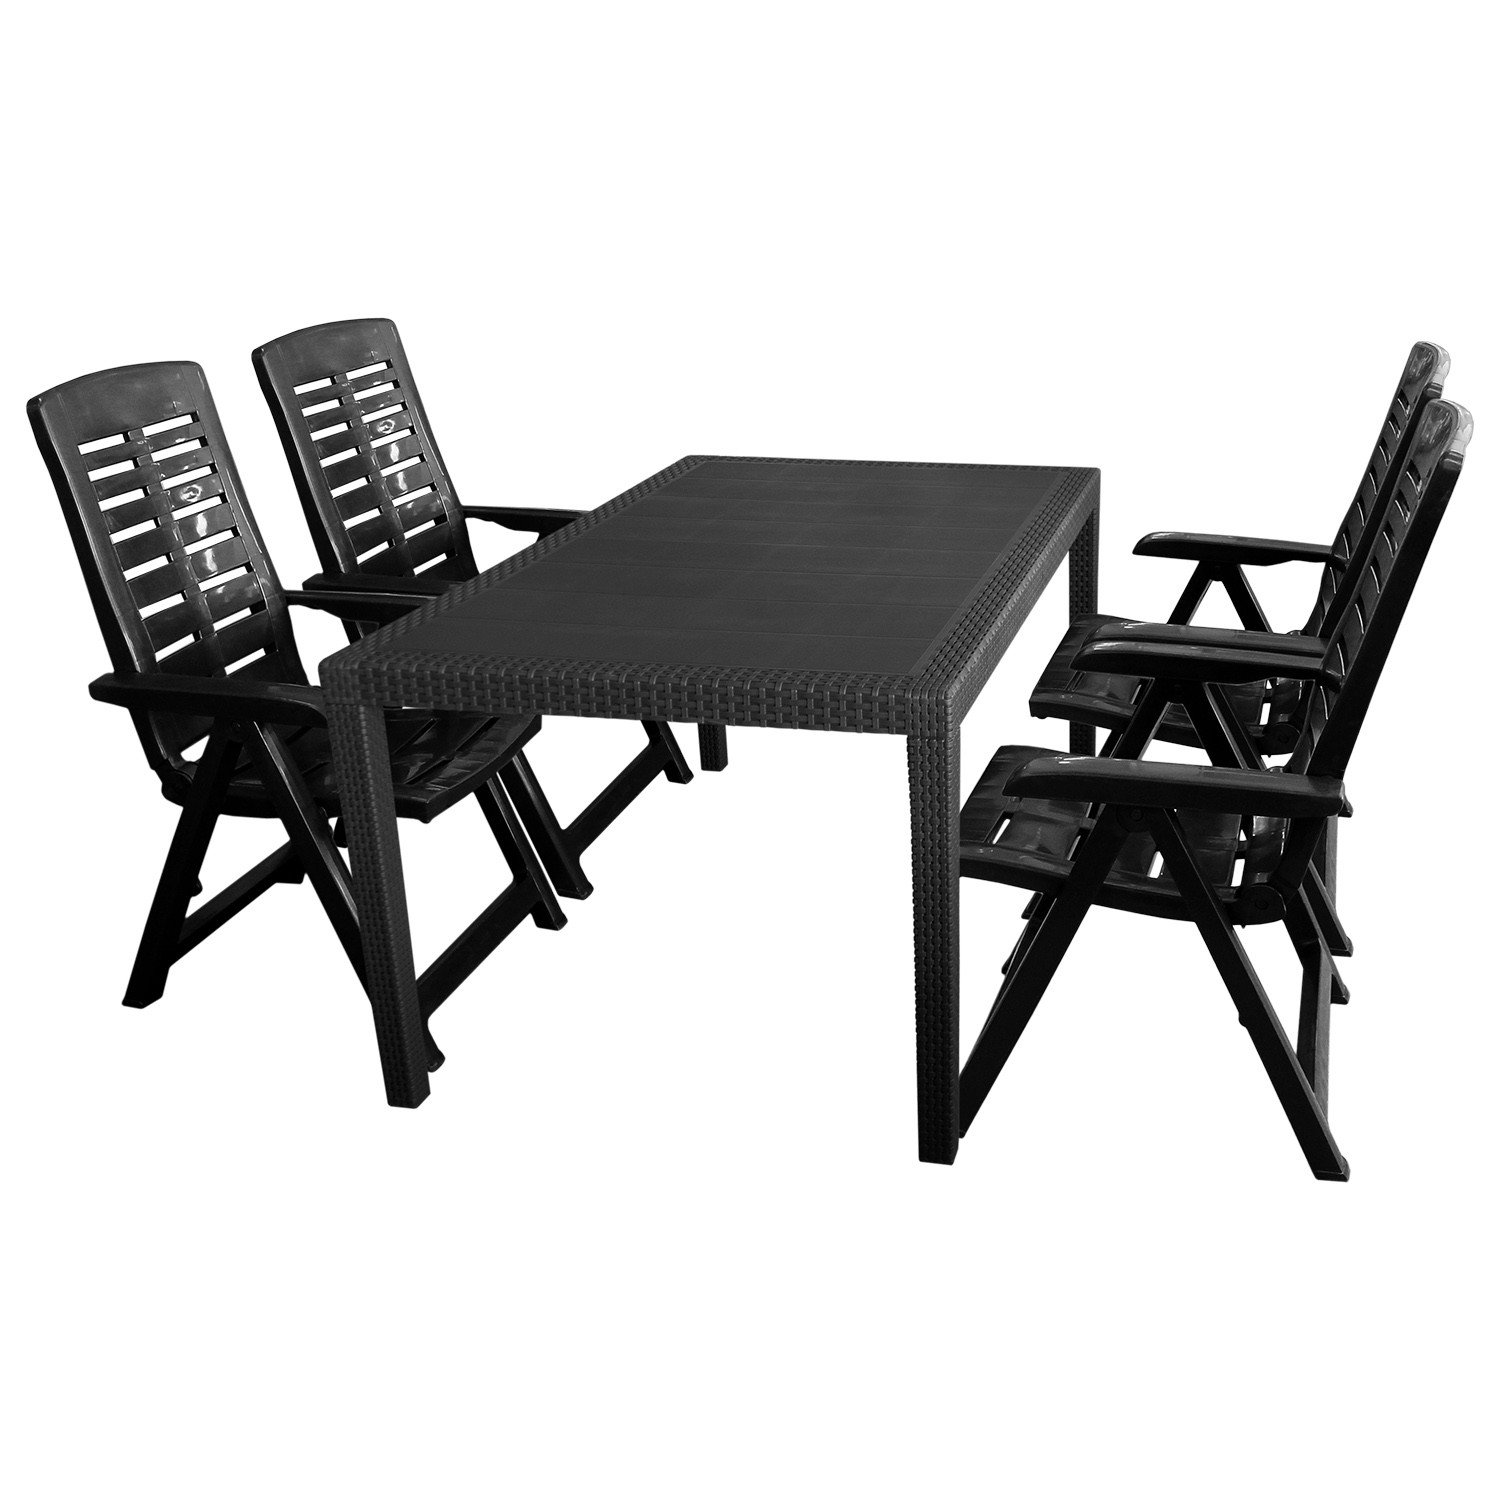 5tlg sitzgruppe gartengarnitur terrassenm bel gartenm bel campingm bel set gartentisch. Black Bedroom Furniture Sets. Home Design Ideas